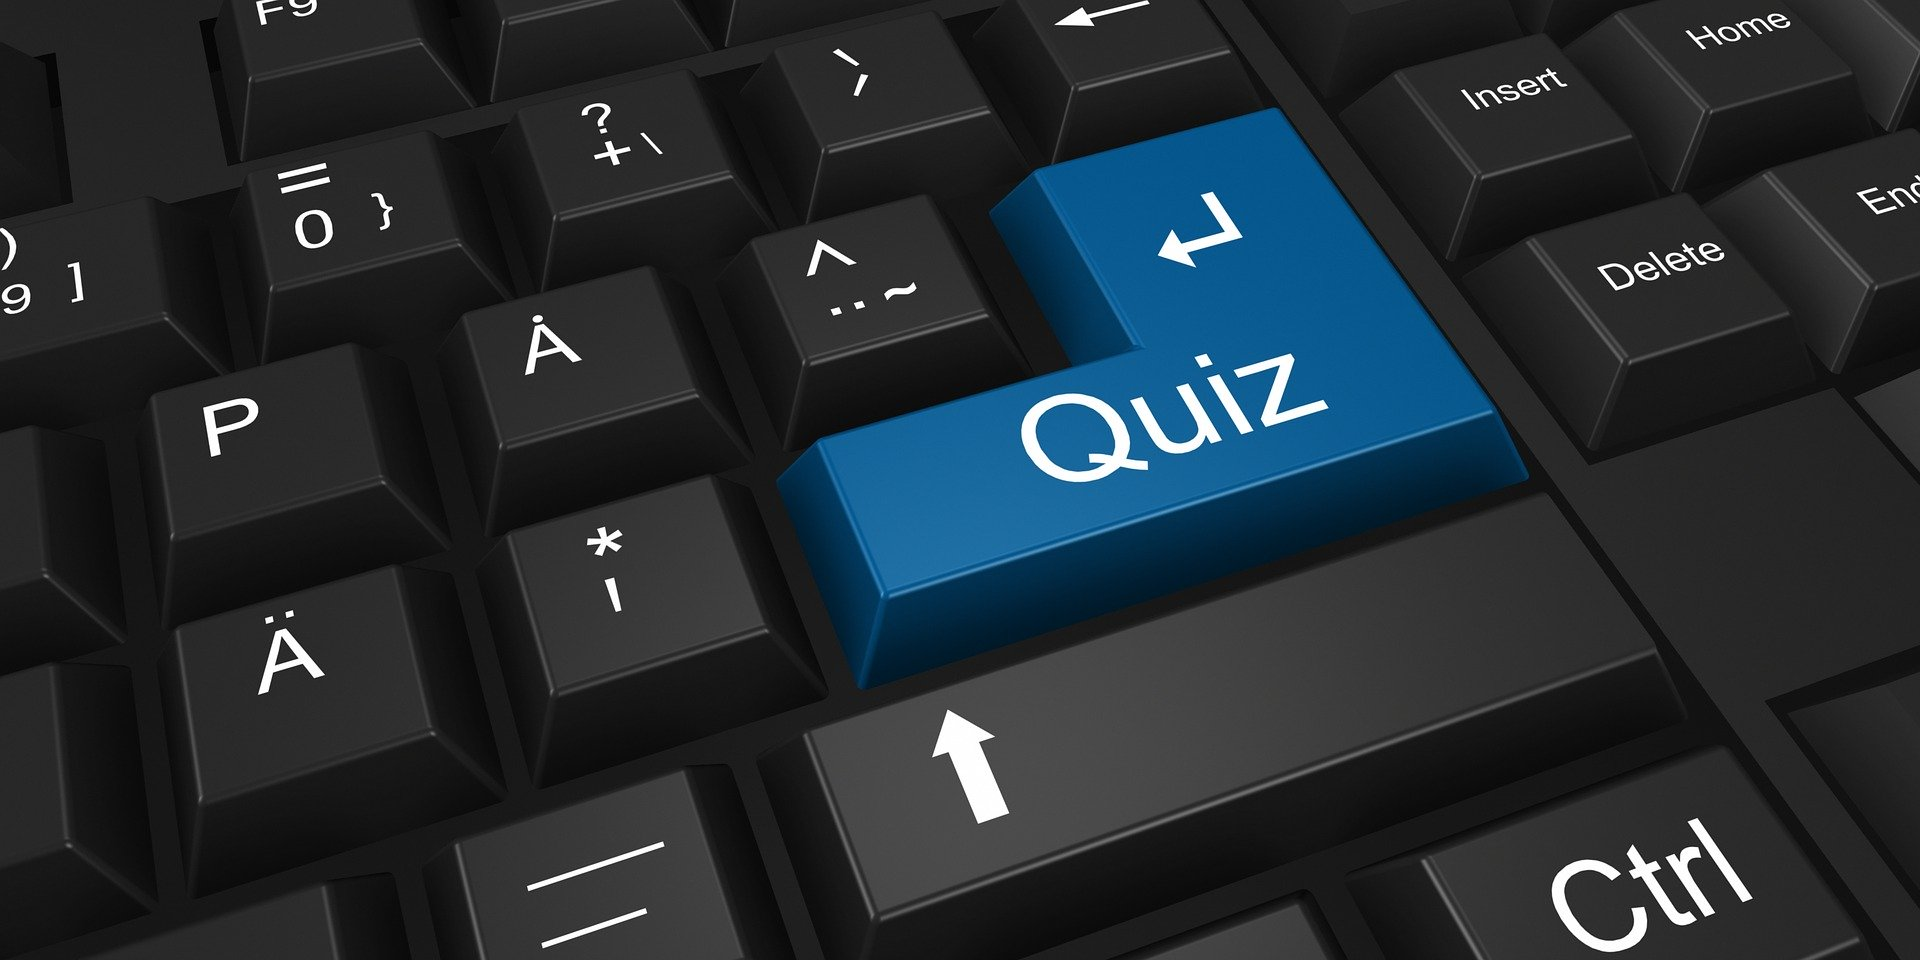 Our Next Quiz is Friday 22nd of May